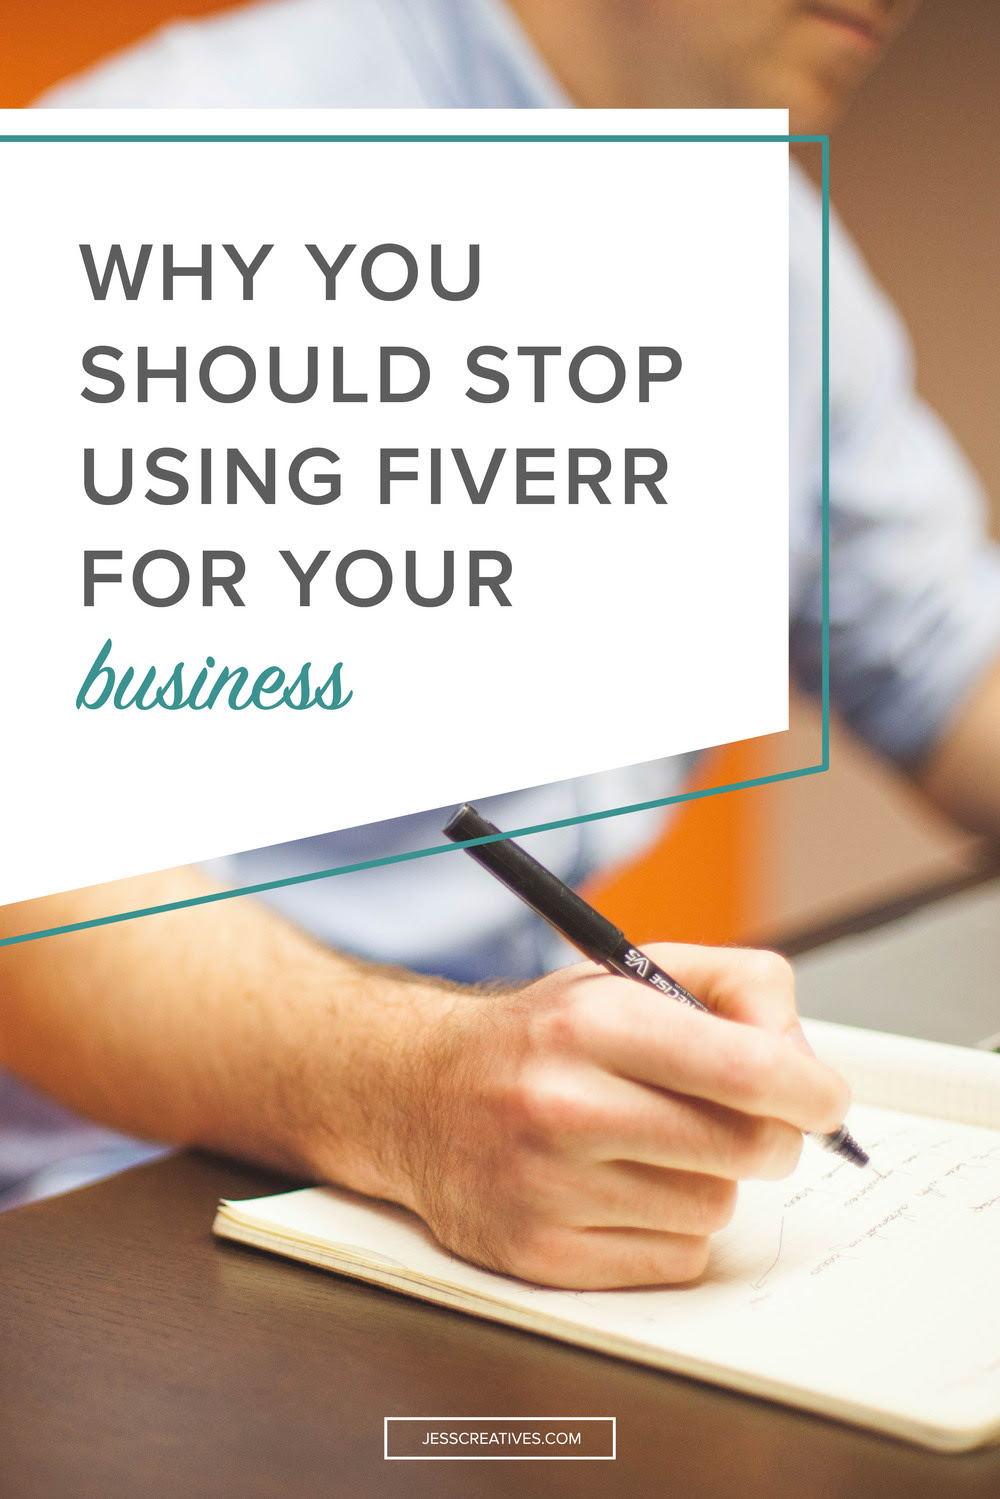 Why You Should Stop Using Fiverr For Your Business Jess Creatives